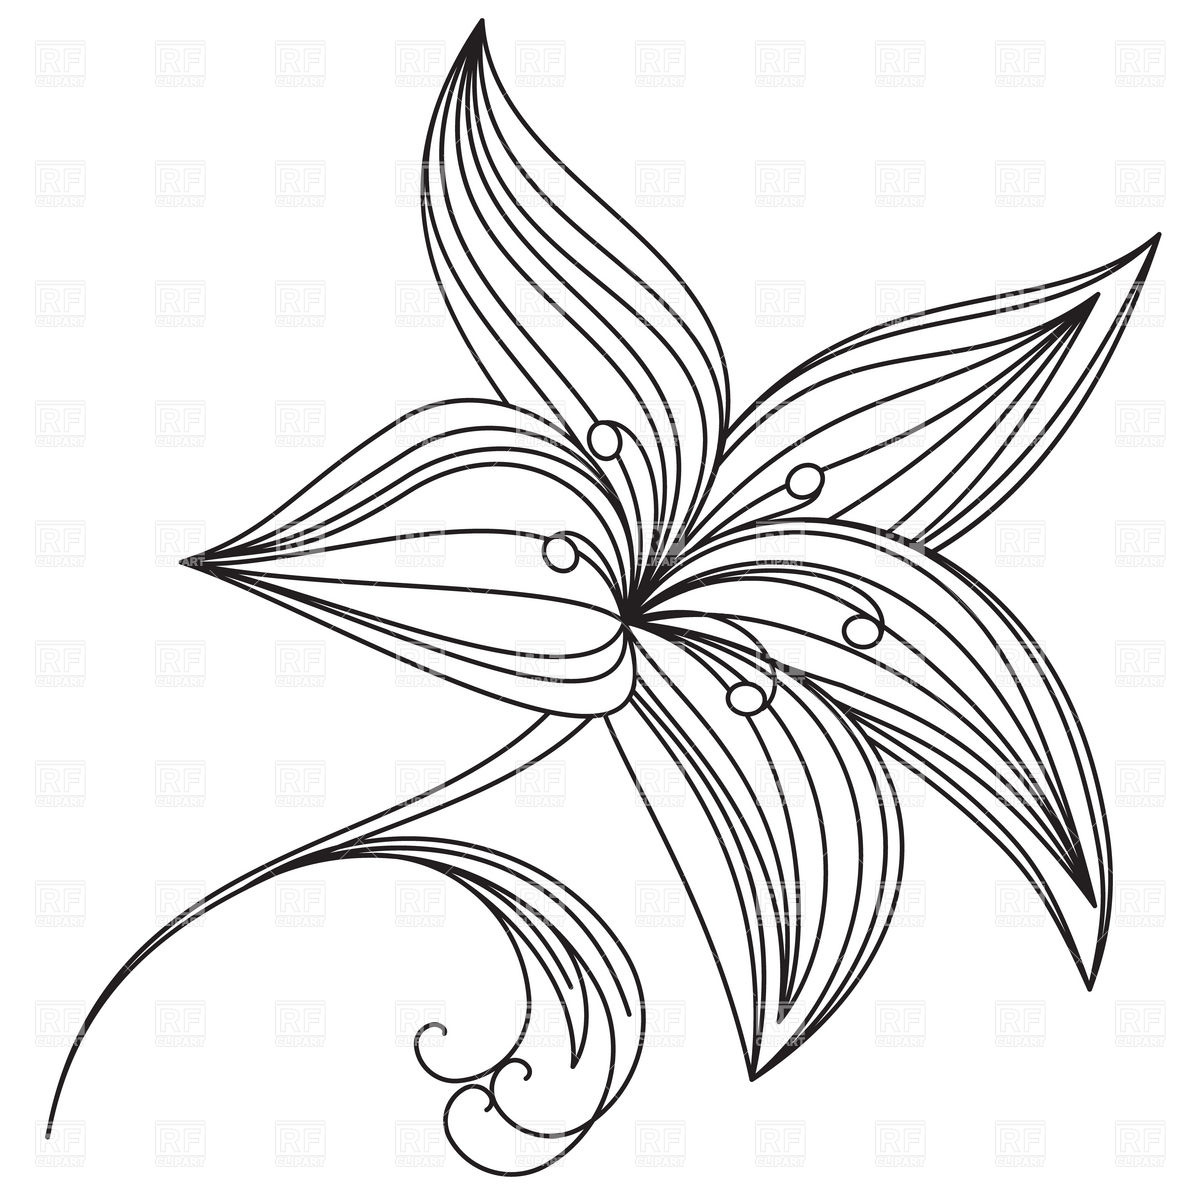 Lily Drawing Tattoo At Getdrawings Free For Personal Use Lily